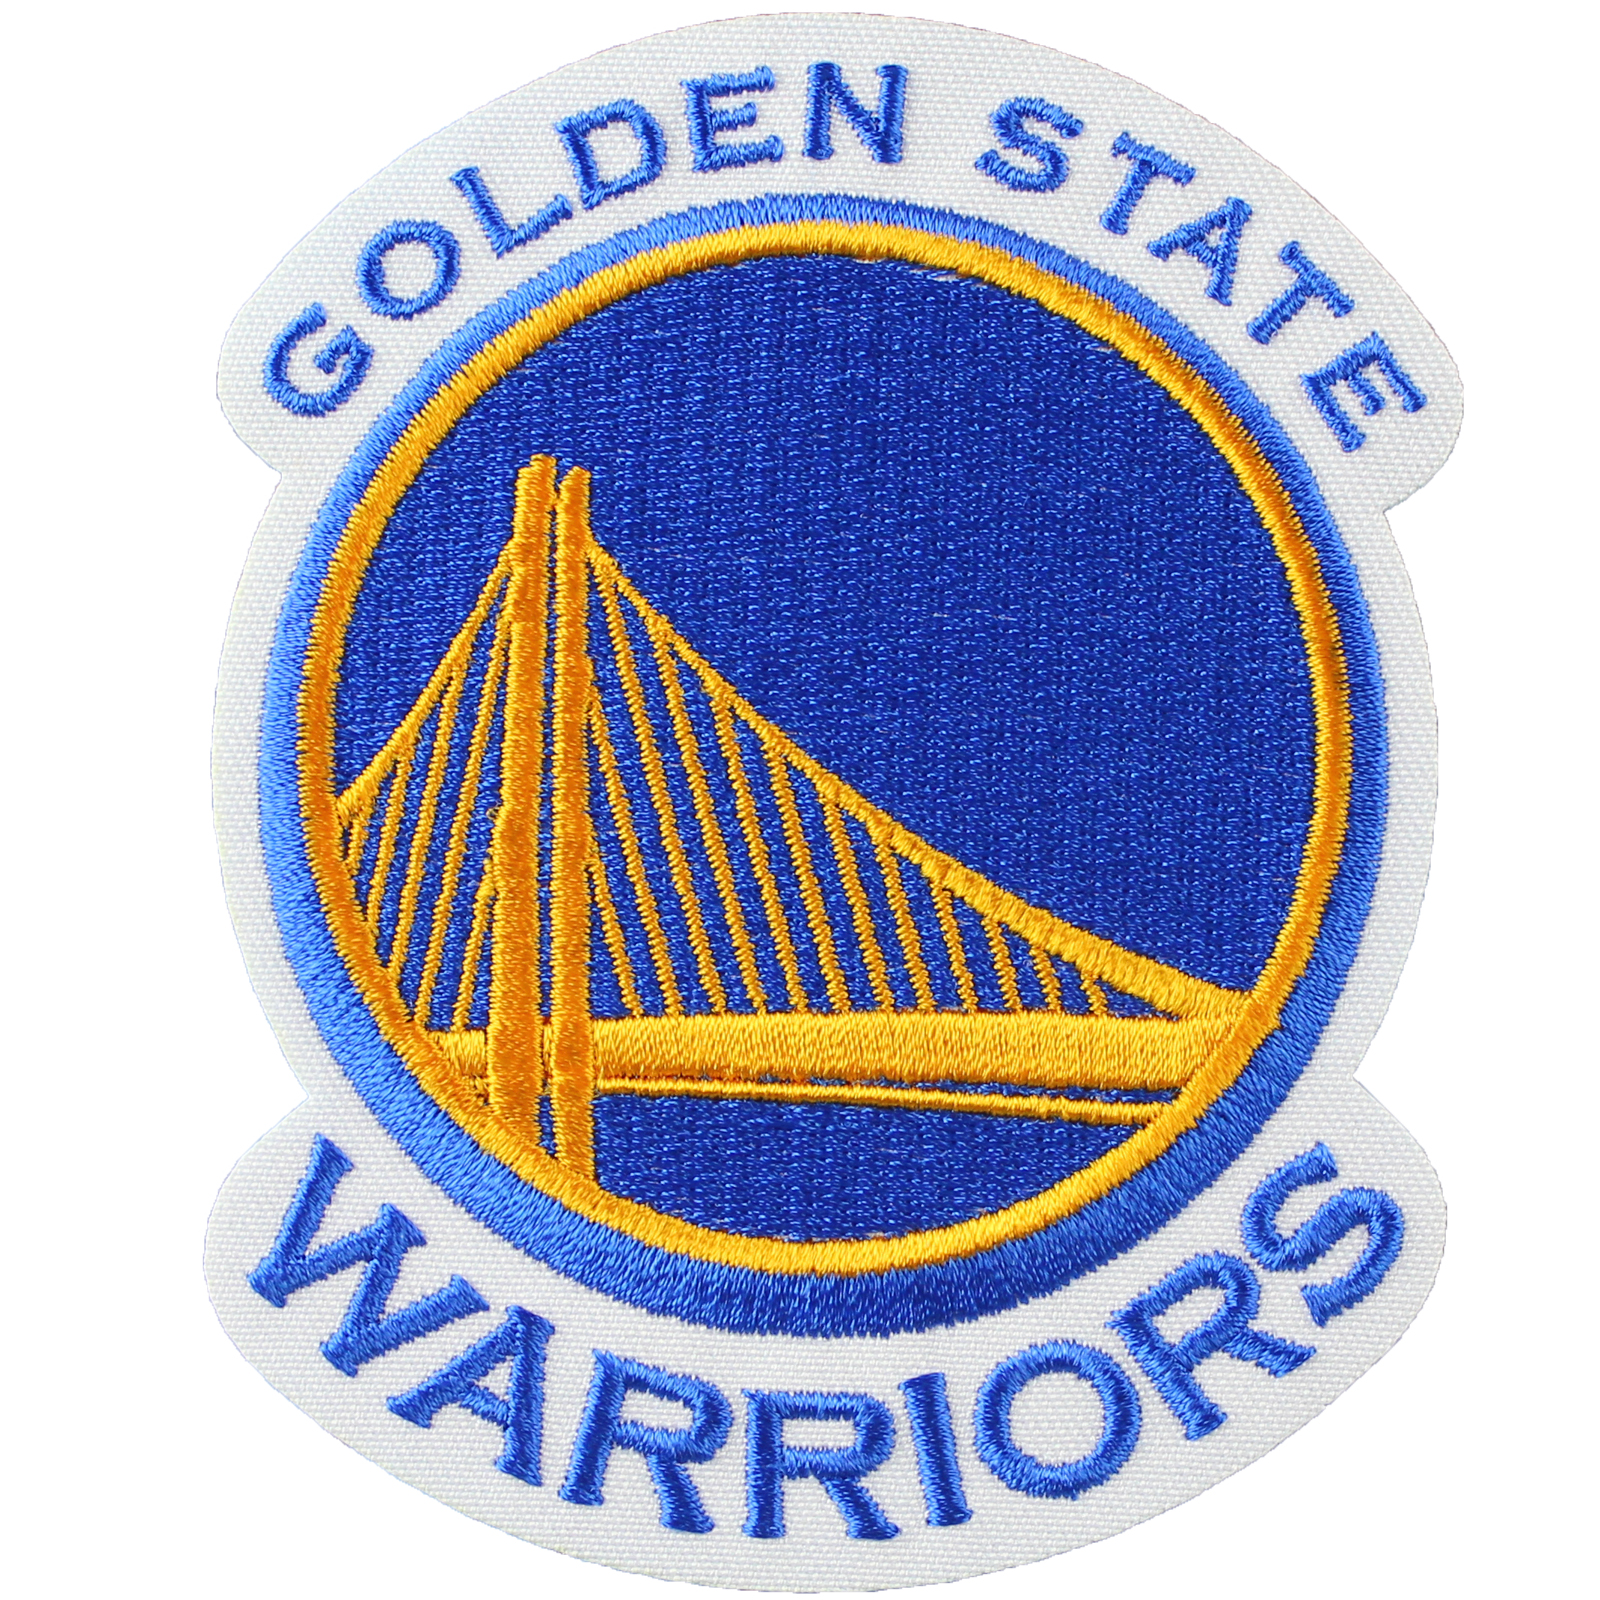 Details about Golden State Warriors Official NBA Primary Team Logo Jersey  Patch Stephen Curry.